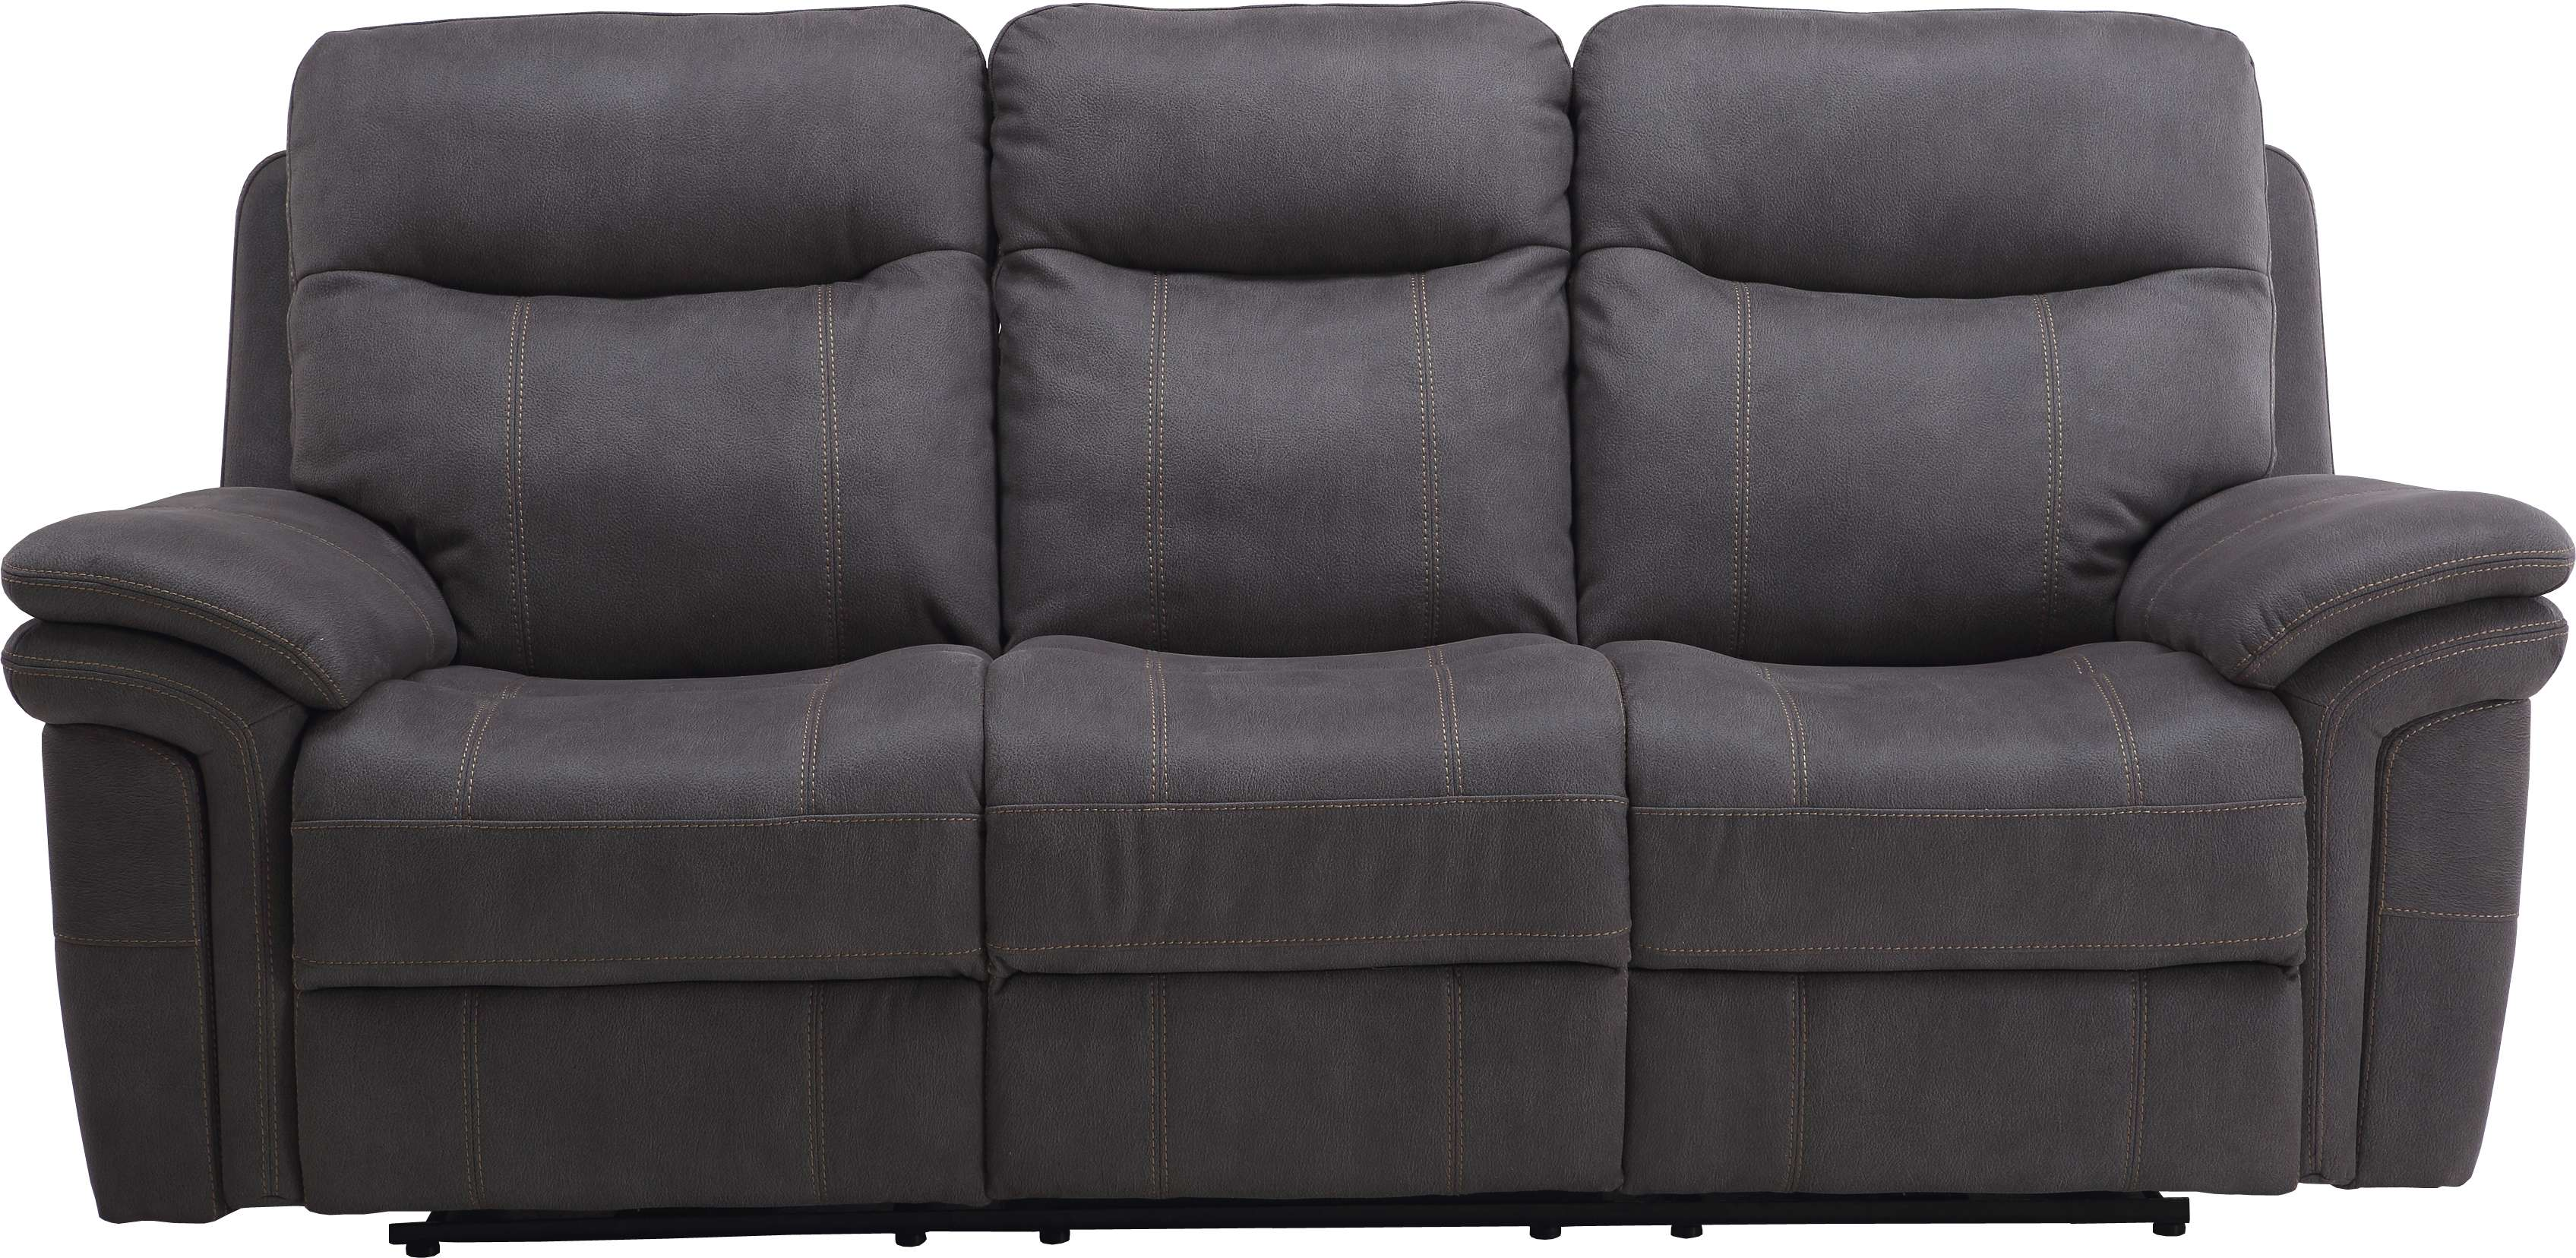 Parker Living Mason Carbon Sofa Dual Power Recliner With Power